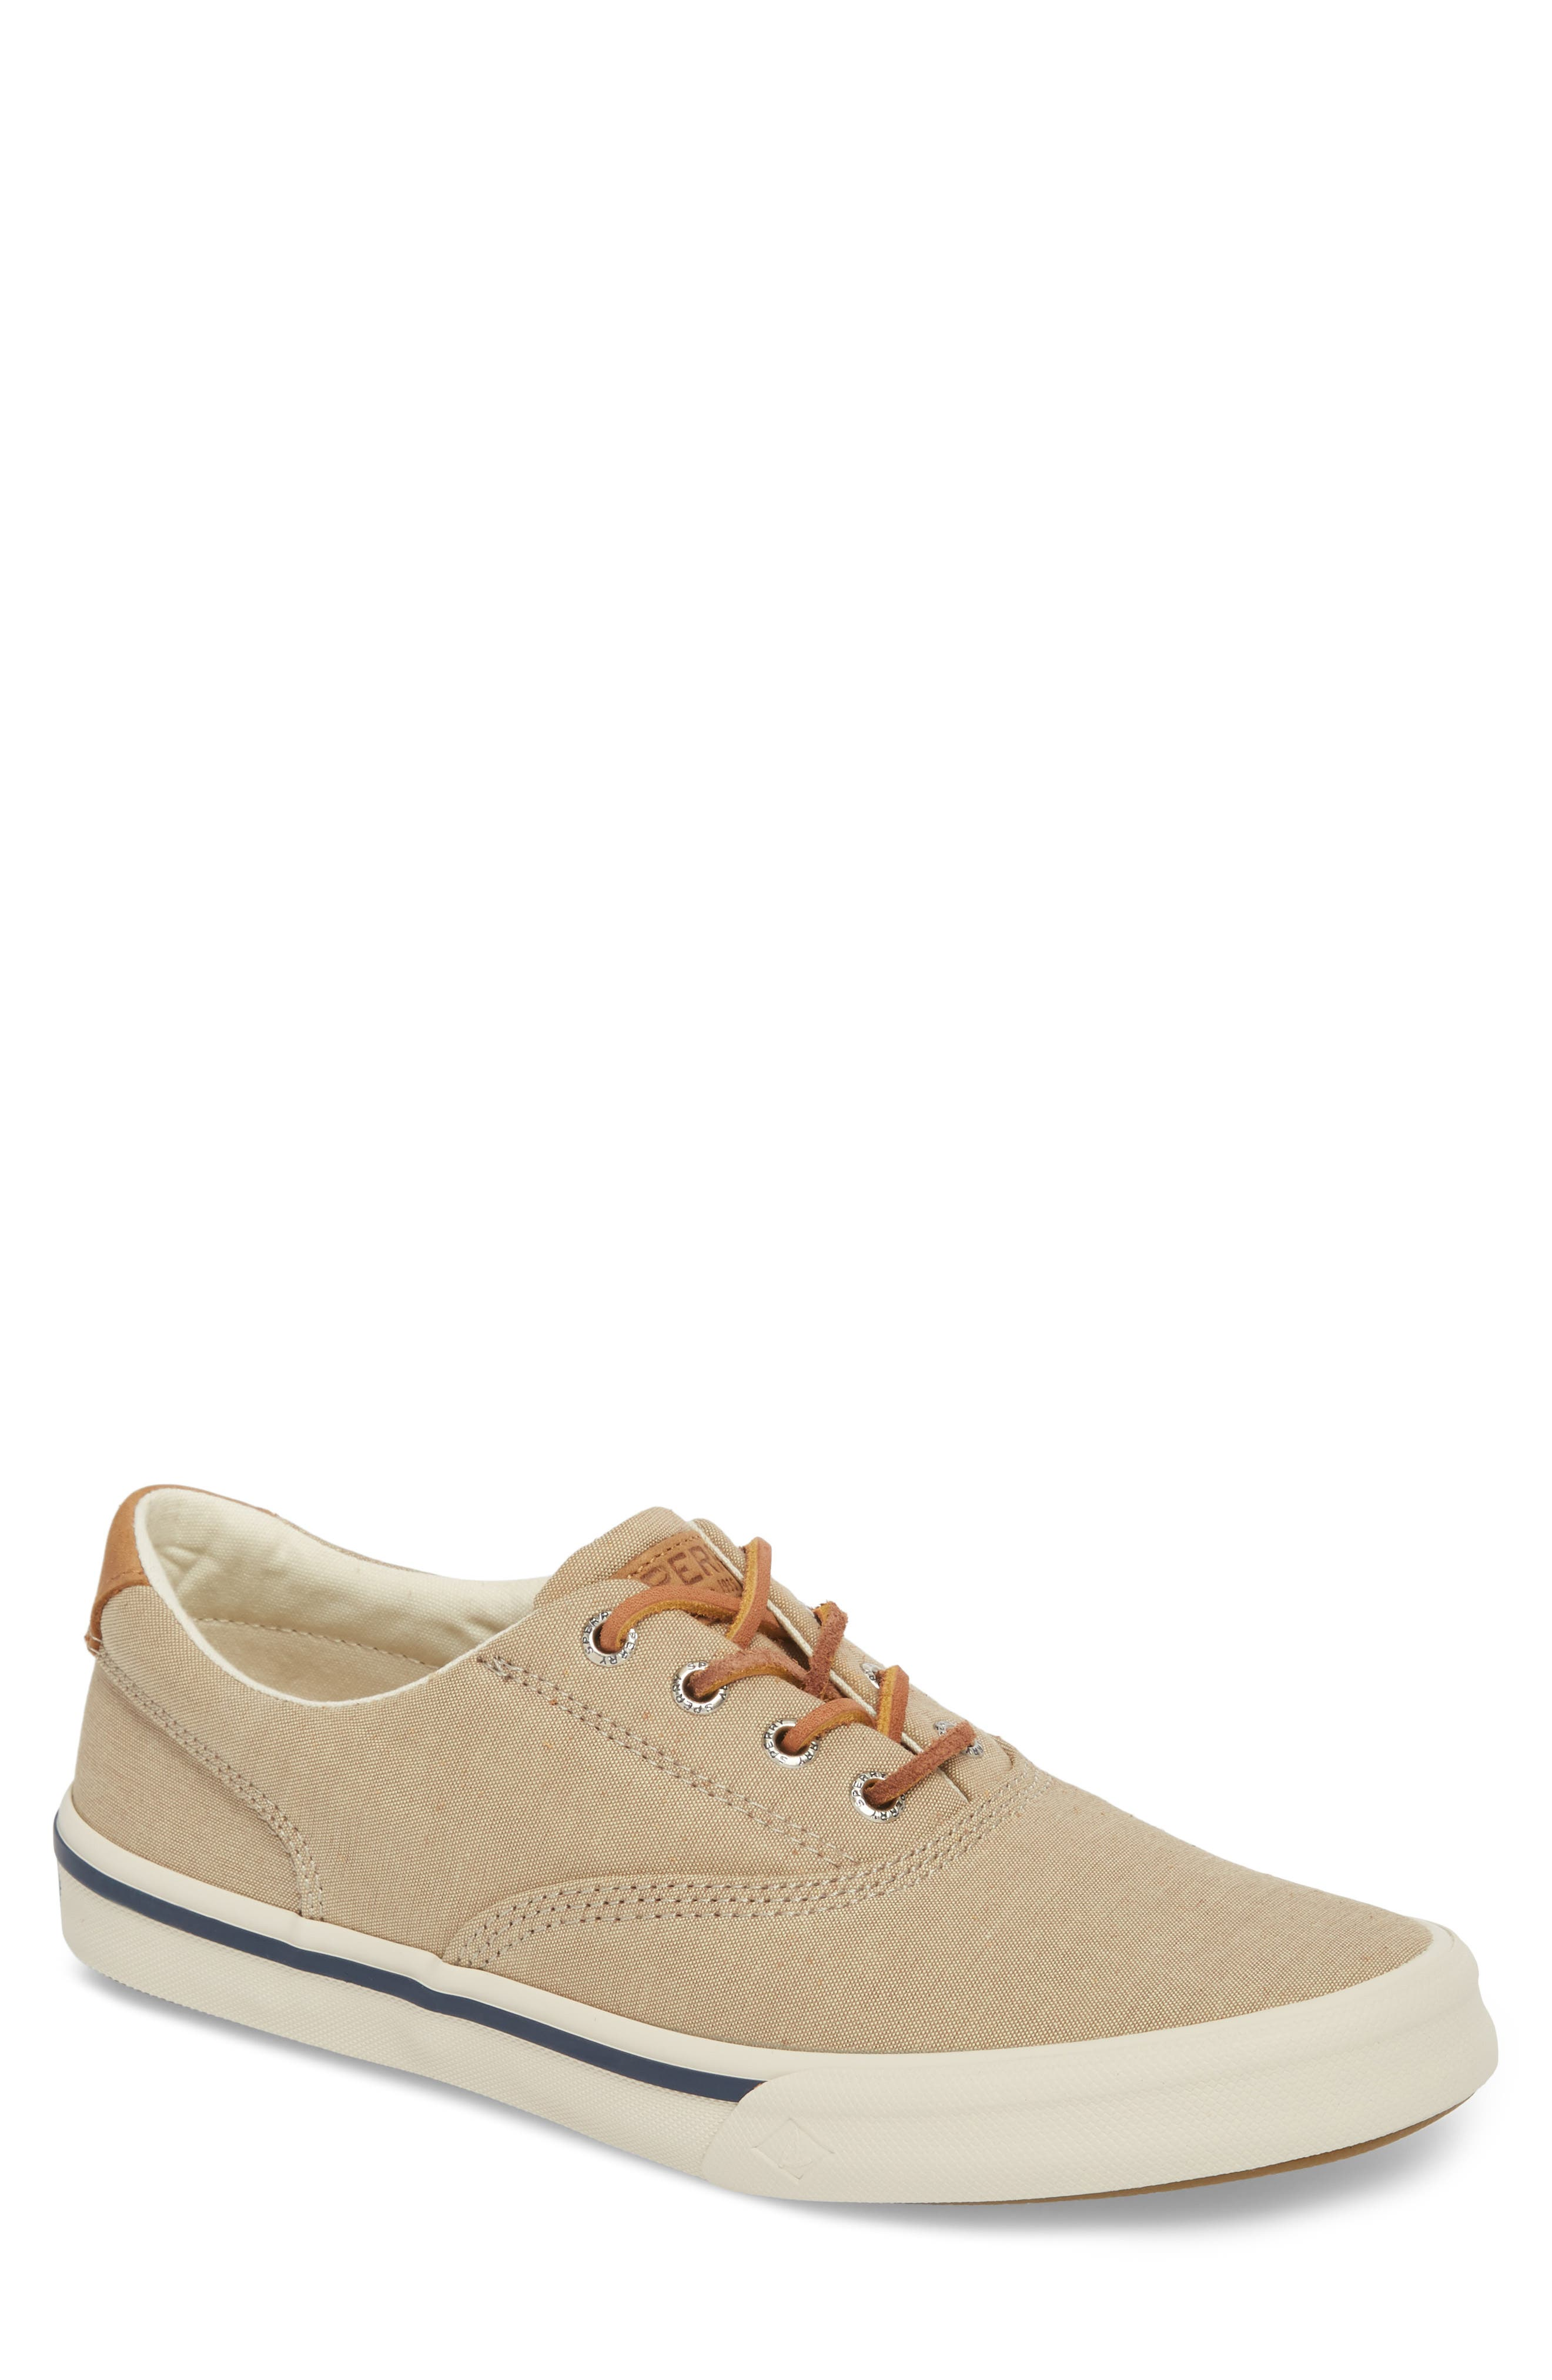 Striper 2 CVO Sneaker,                         Main,                         color, Chino Canvas